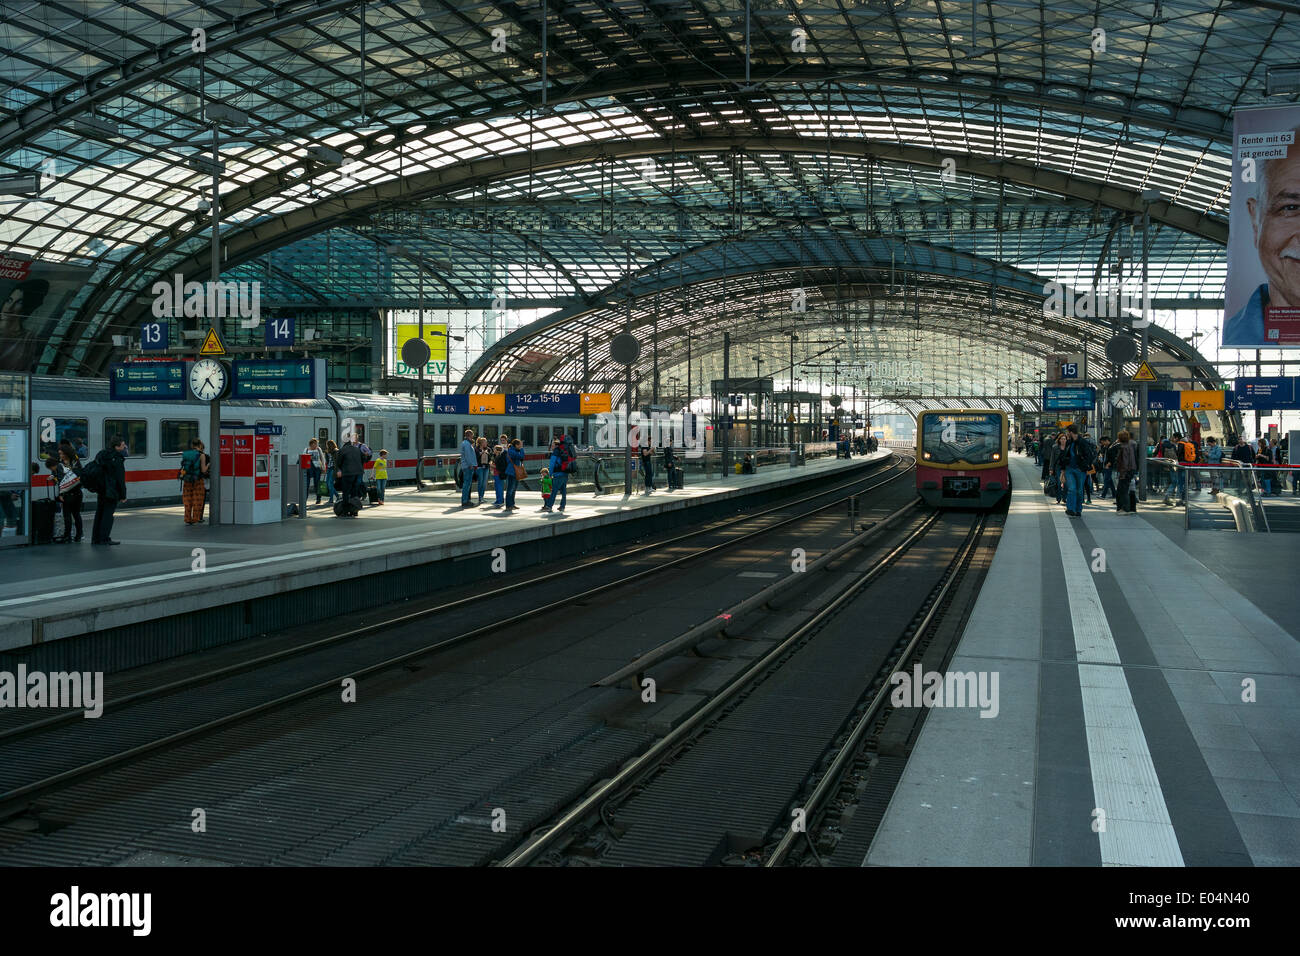 Berlin Central Station. Railway platform. The central station of Berlin - the largest and modern railway station of Europe - Stock Image